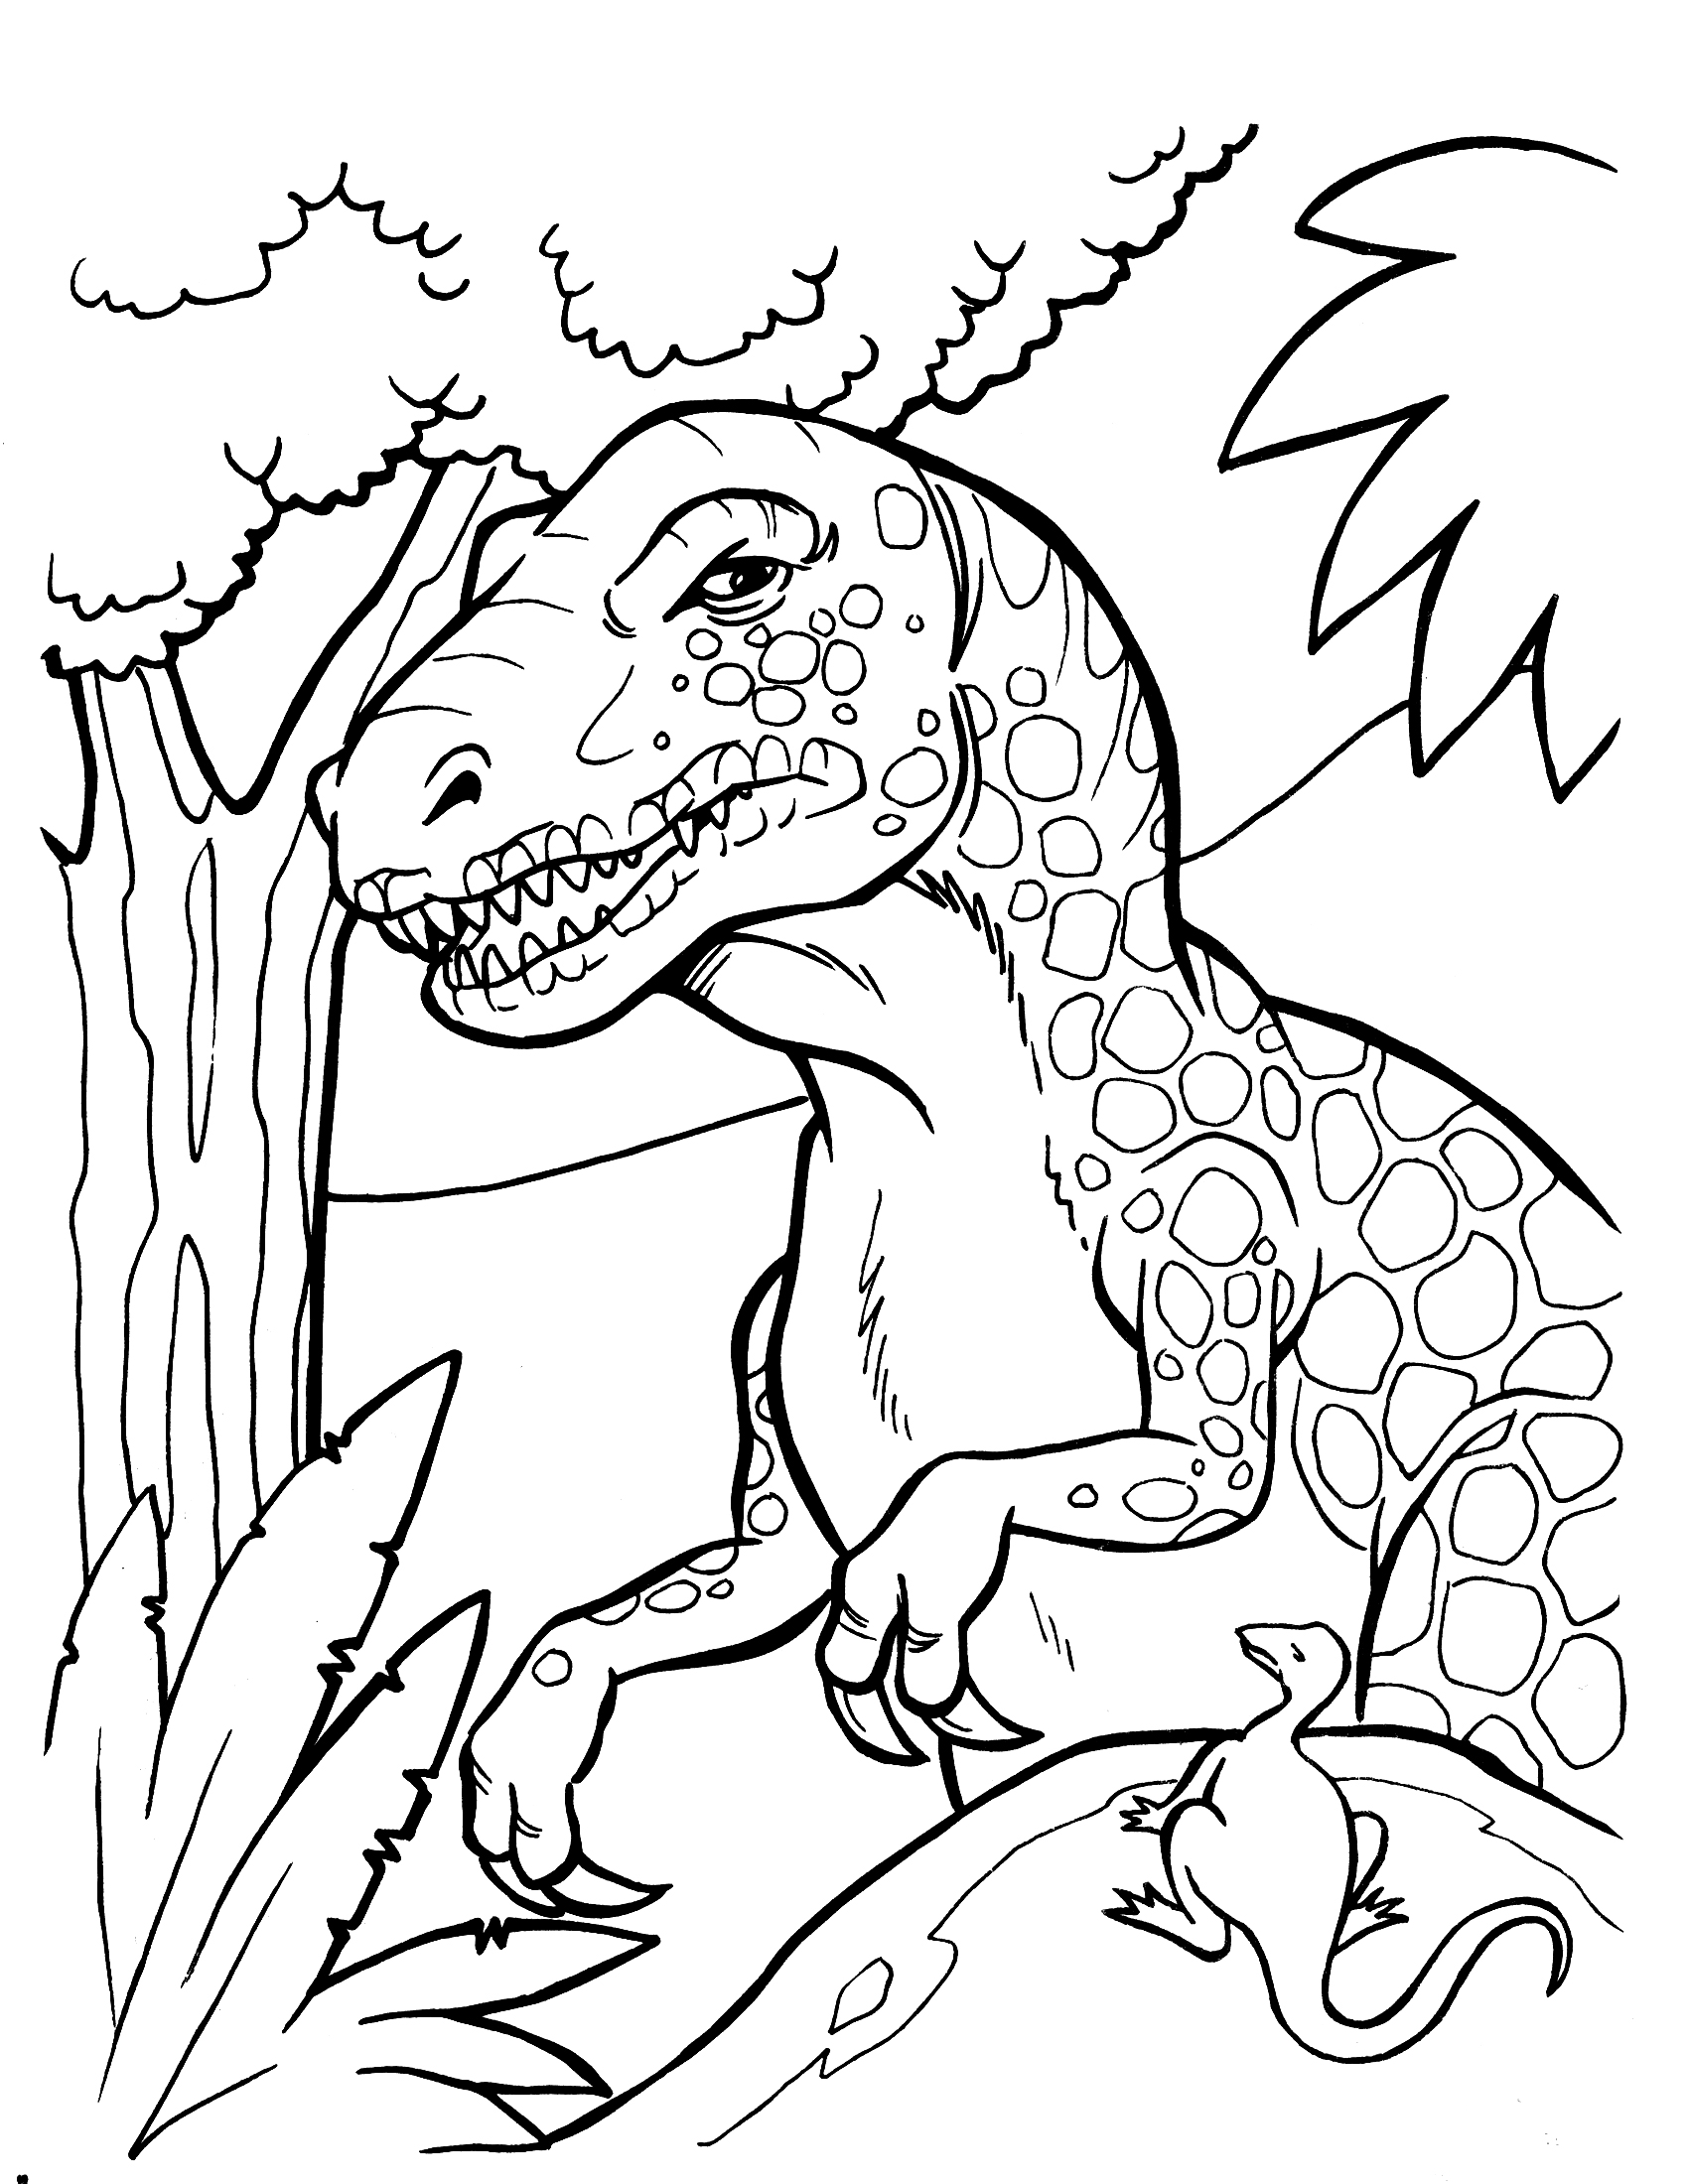 a coloring pages - photo#34